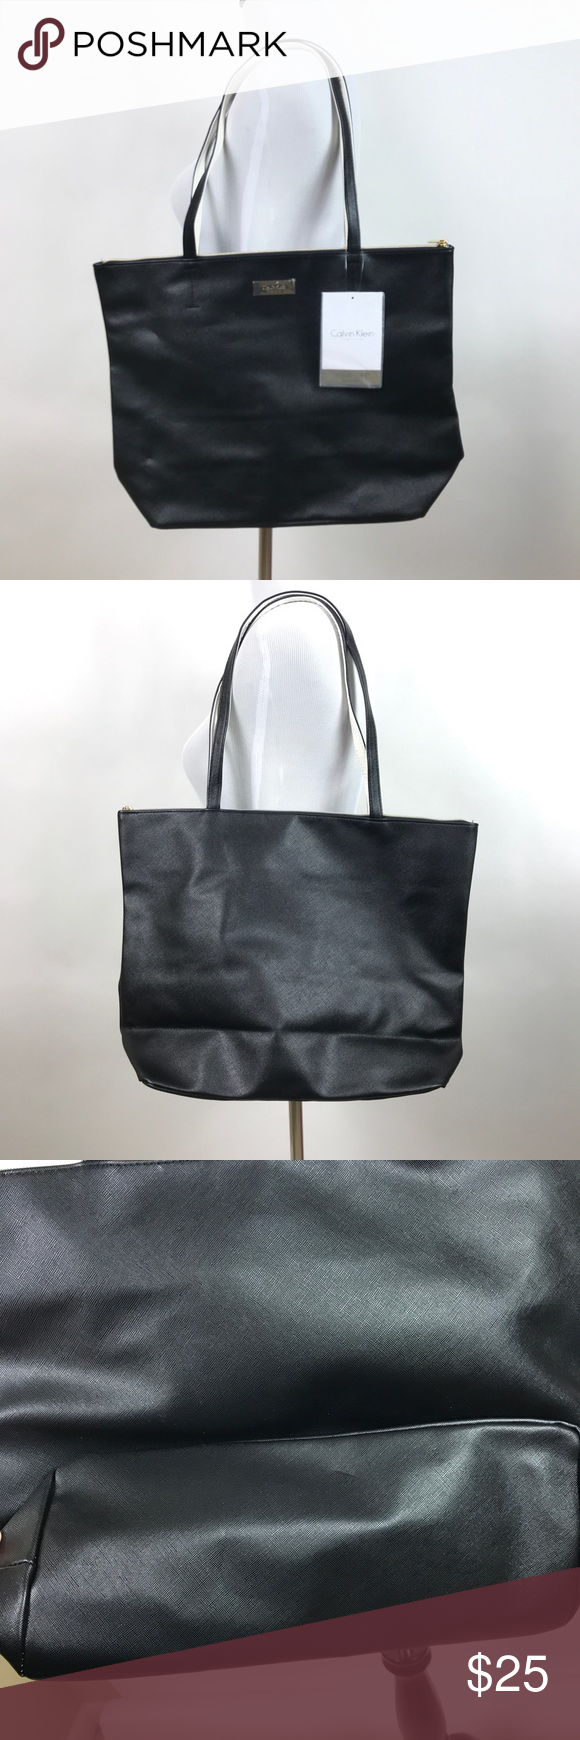 02ba06c377be6 Calvin Klein CK Womens Fragrance Tote Bag Black Large Tote Calvin Klein  Bags Totes